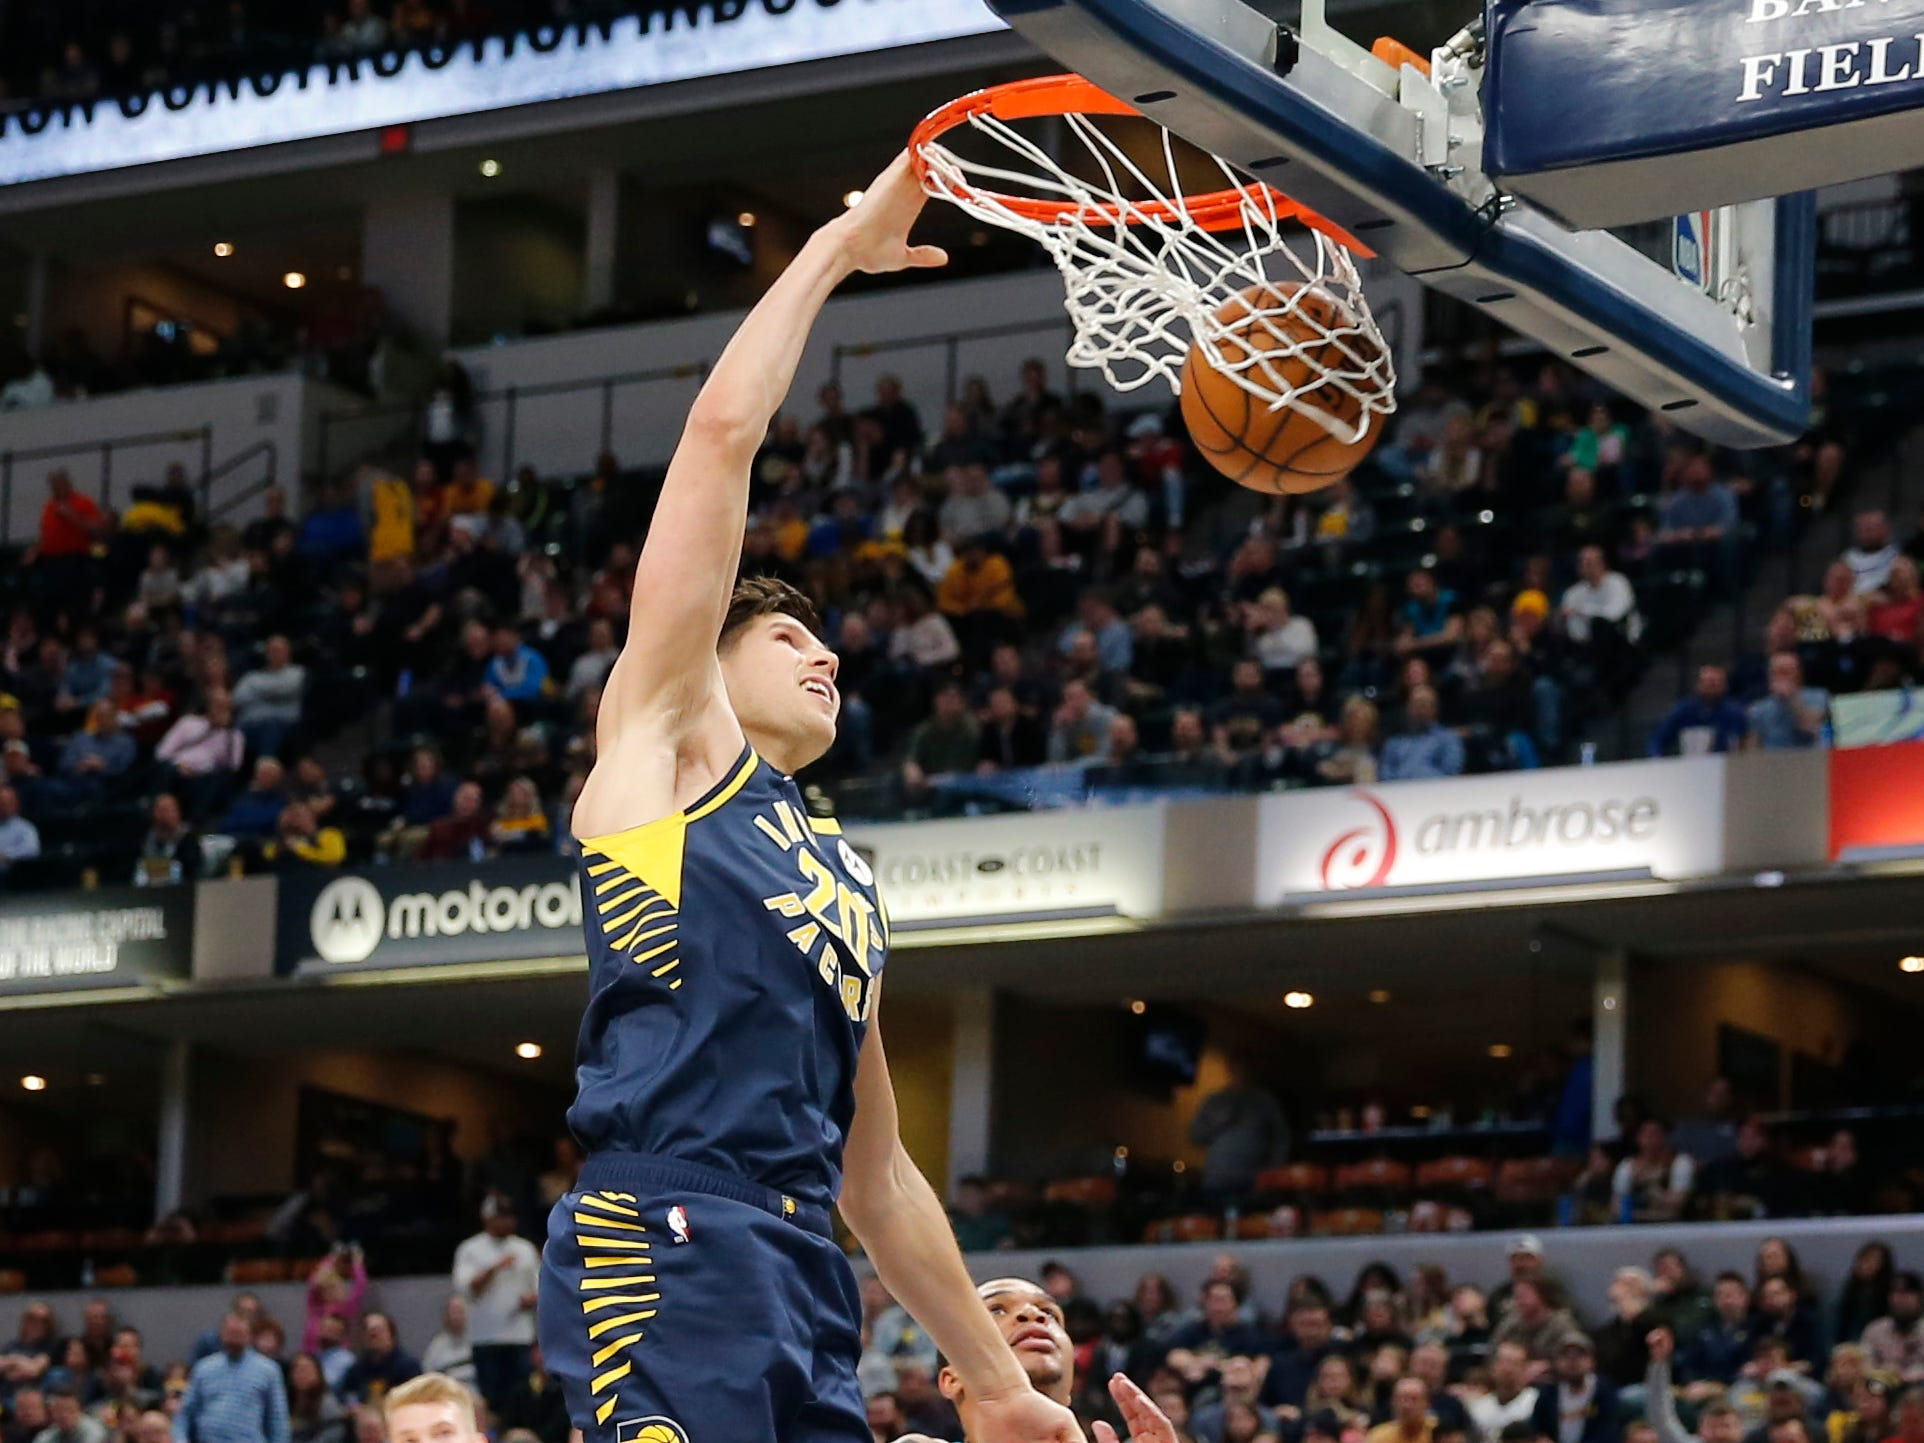 Feb 11, 2019; Indianapolis, IN, USA; Indiana Pacers forward Doug McDermott (20) dunks against Charlotte Hornets forward Miles Bridges (0) during the fourth quarter at Bankers Life Fieldhouse.